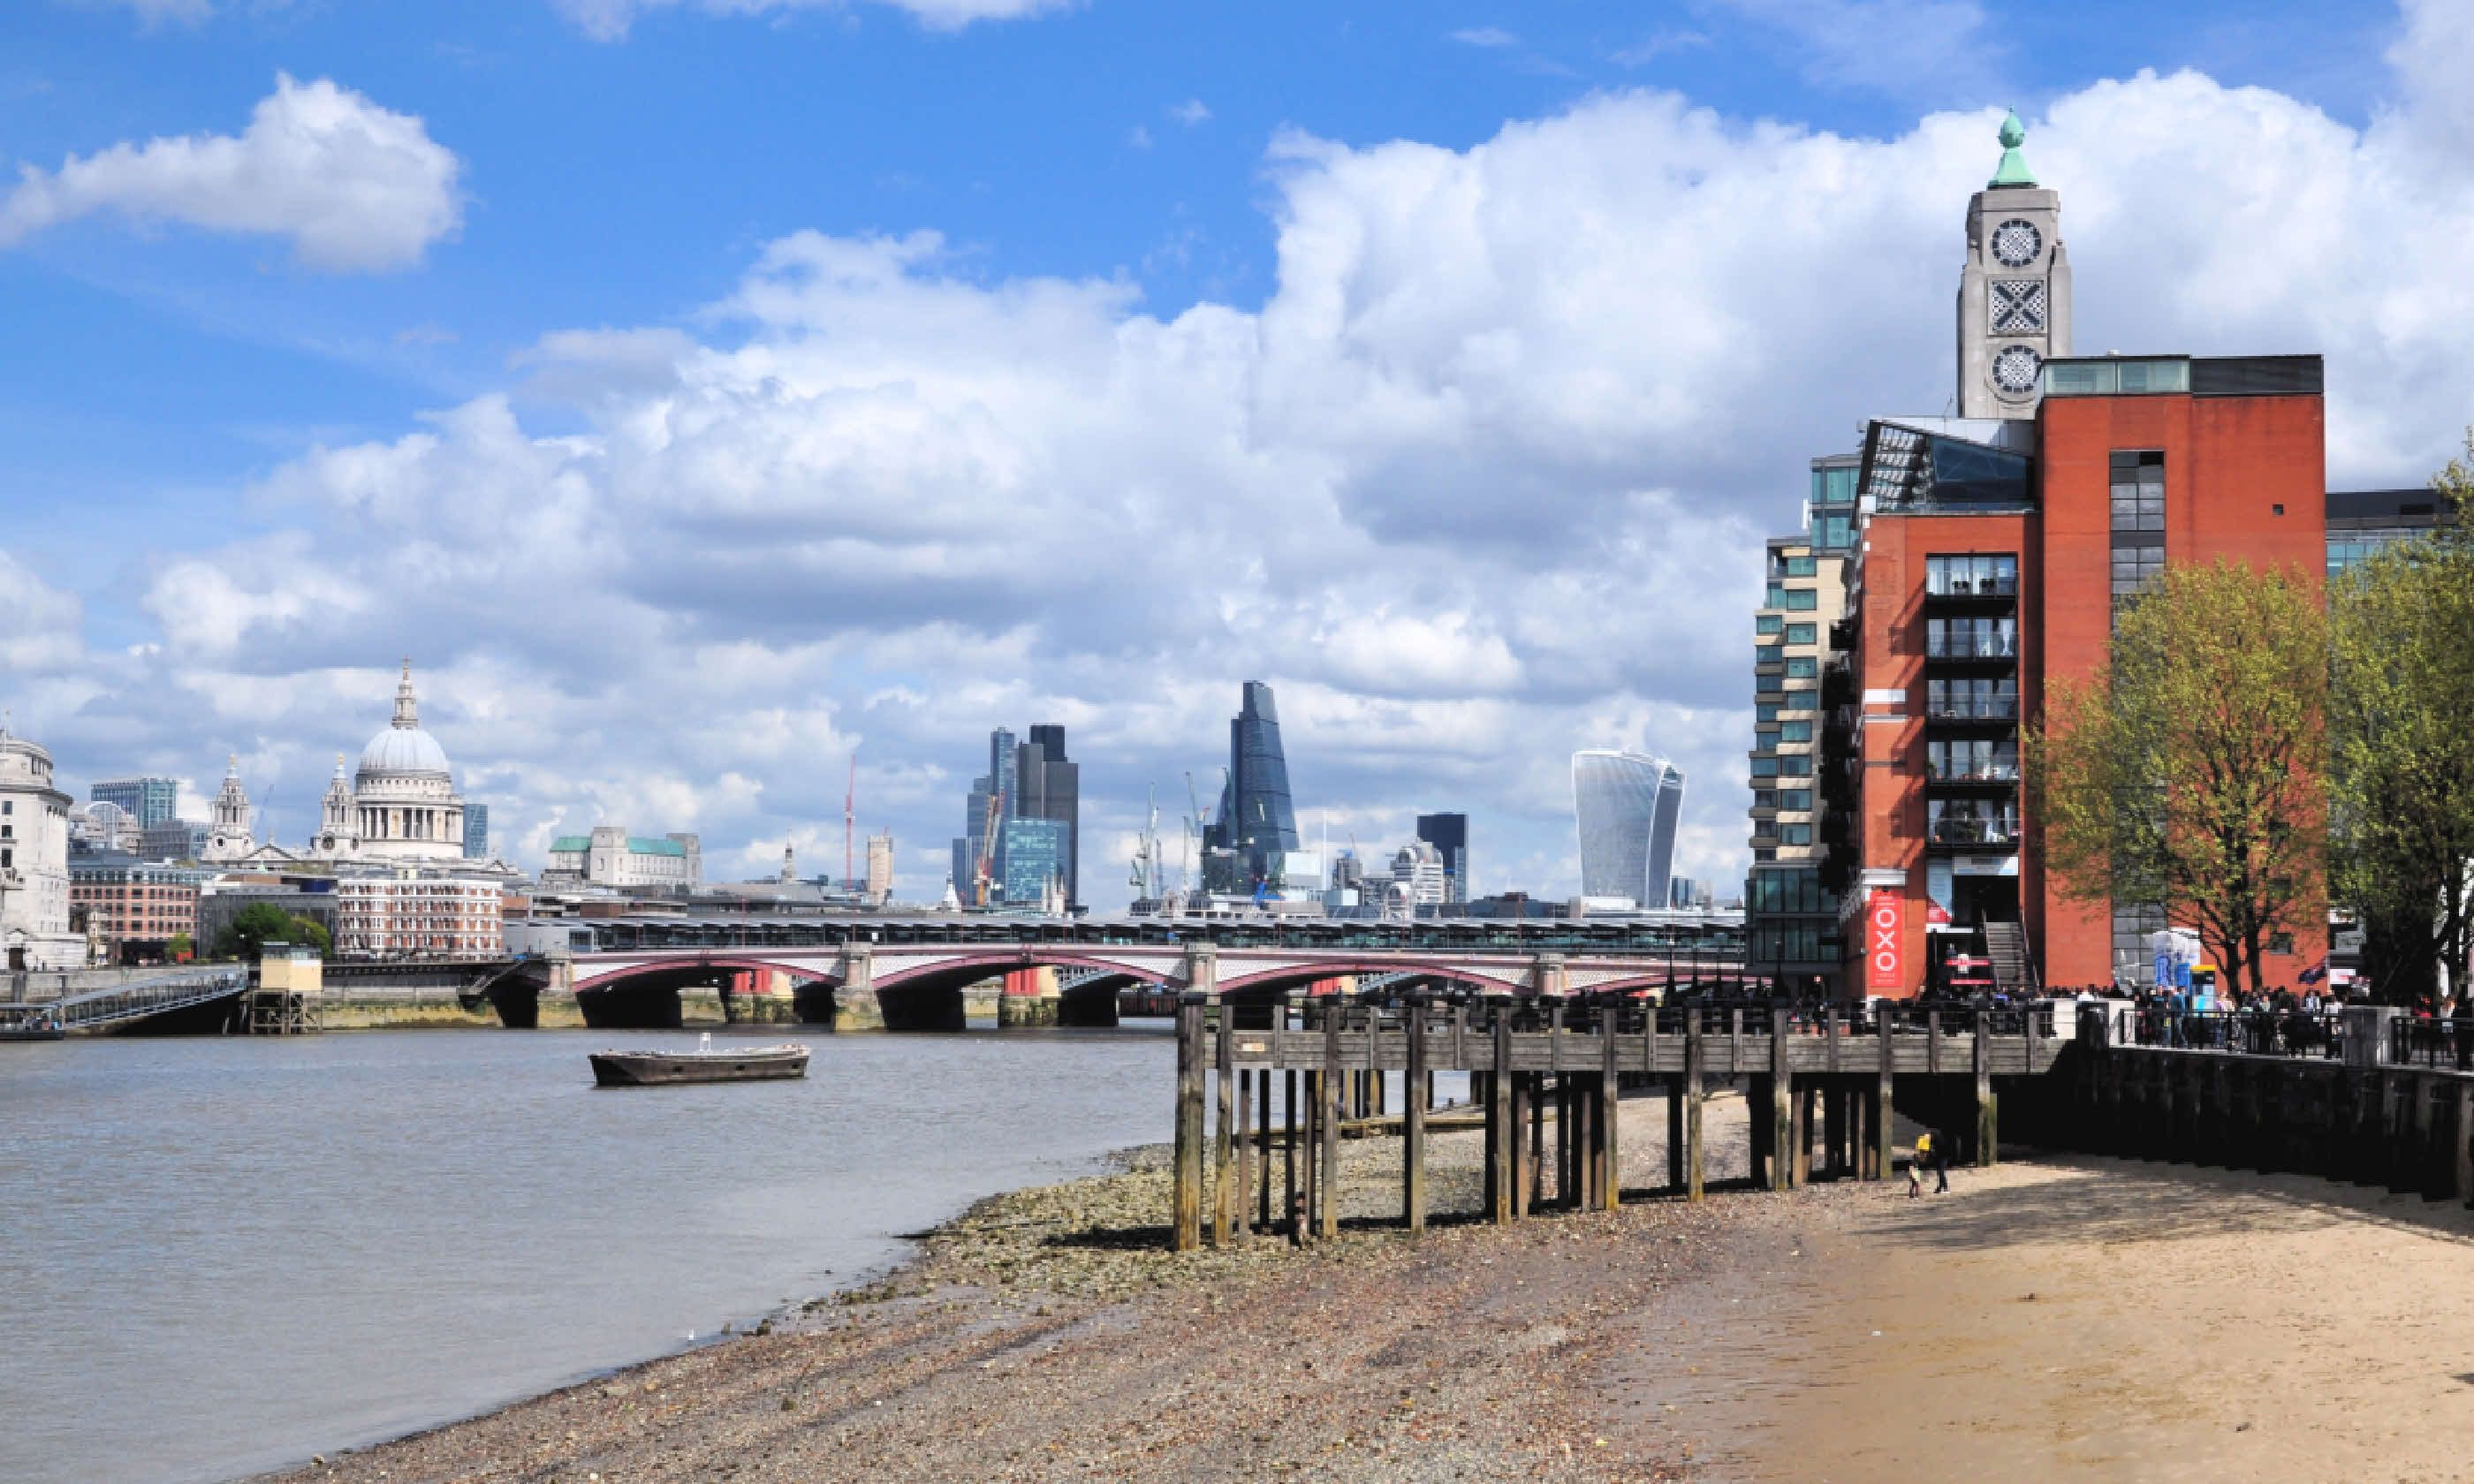 Low tide on the River Thames (Shutterstock)